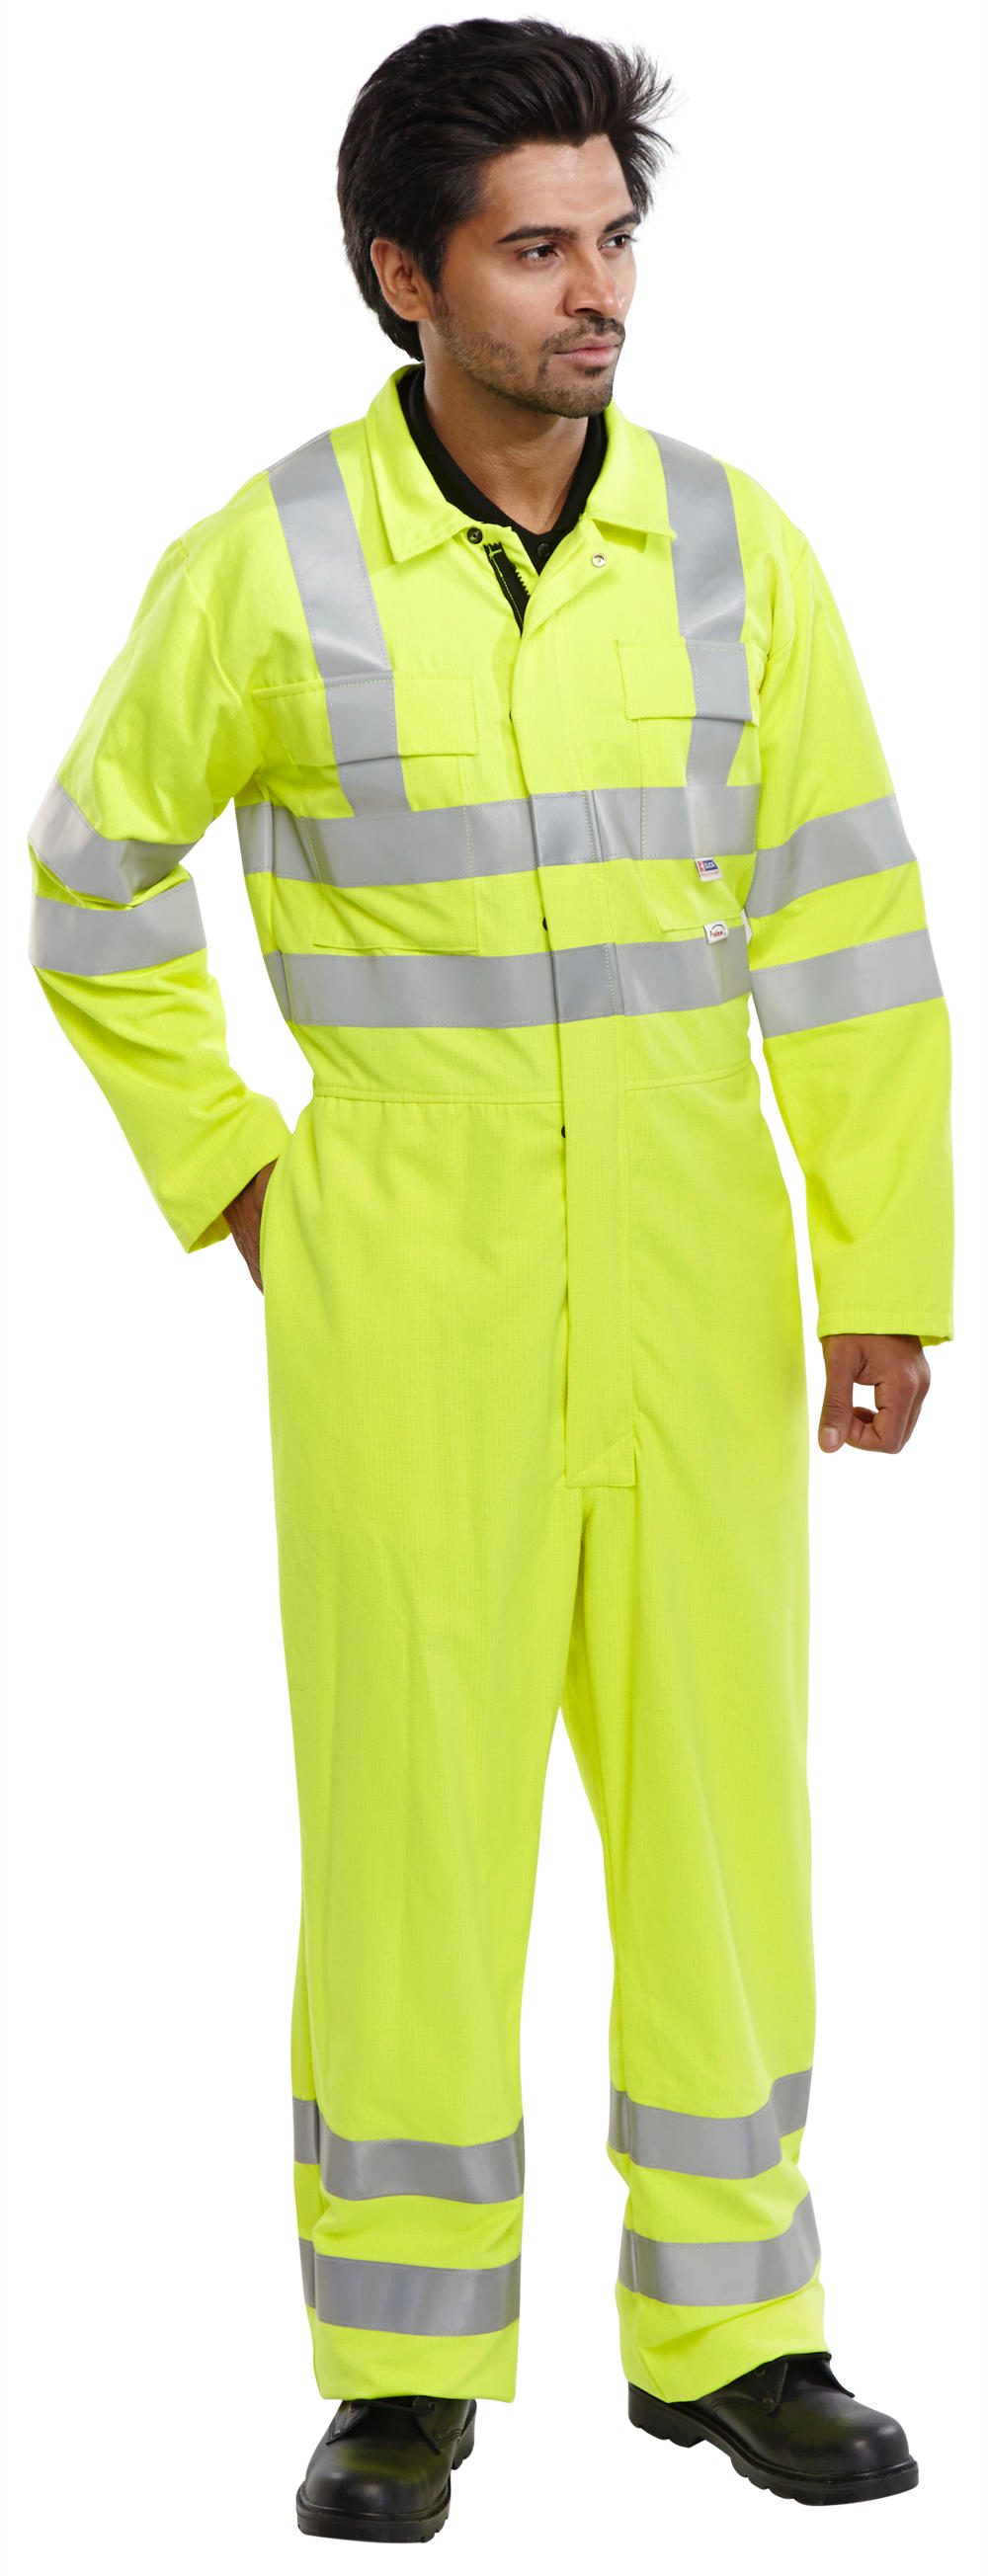 FIRE RETARDANT HI-VIS ANTI STATIC BOILERSUIT - CFRPHVASBS